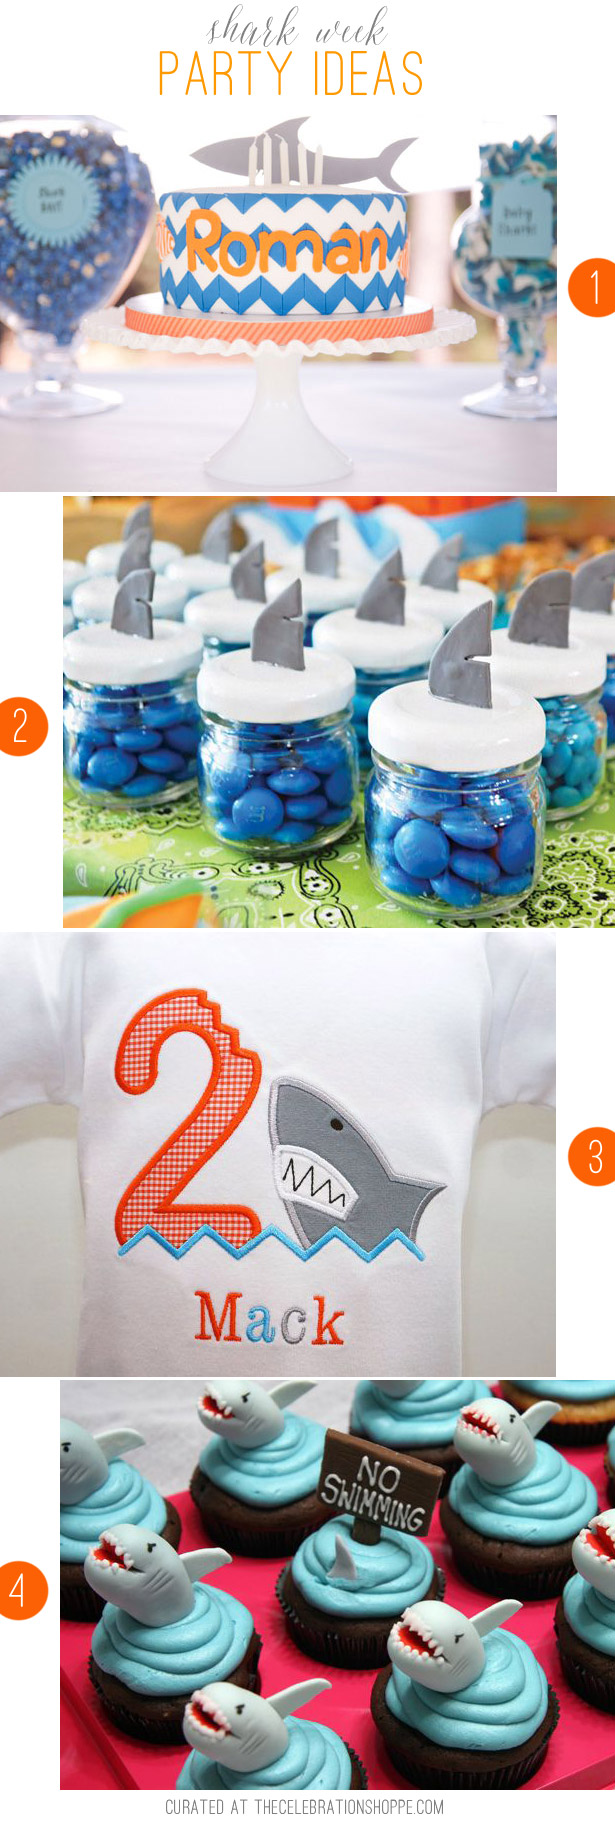 Shark Week Party Ideas | Curated at TheCelebrationShoppe.com